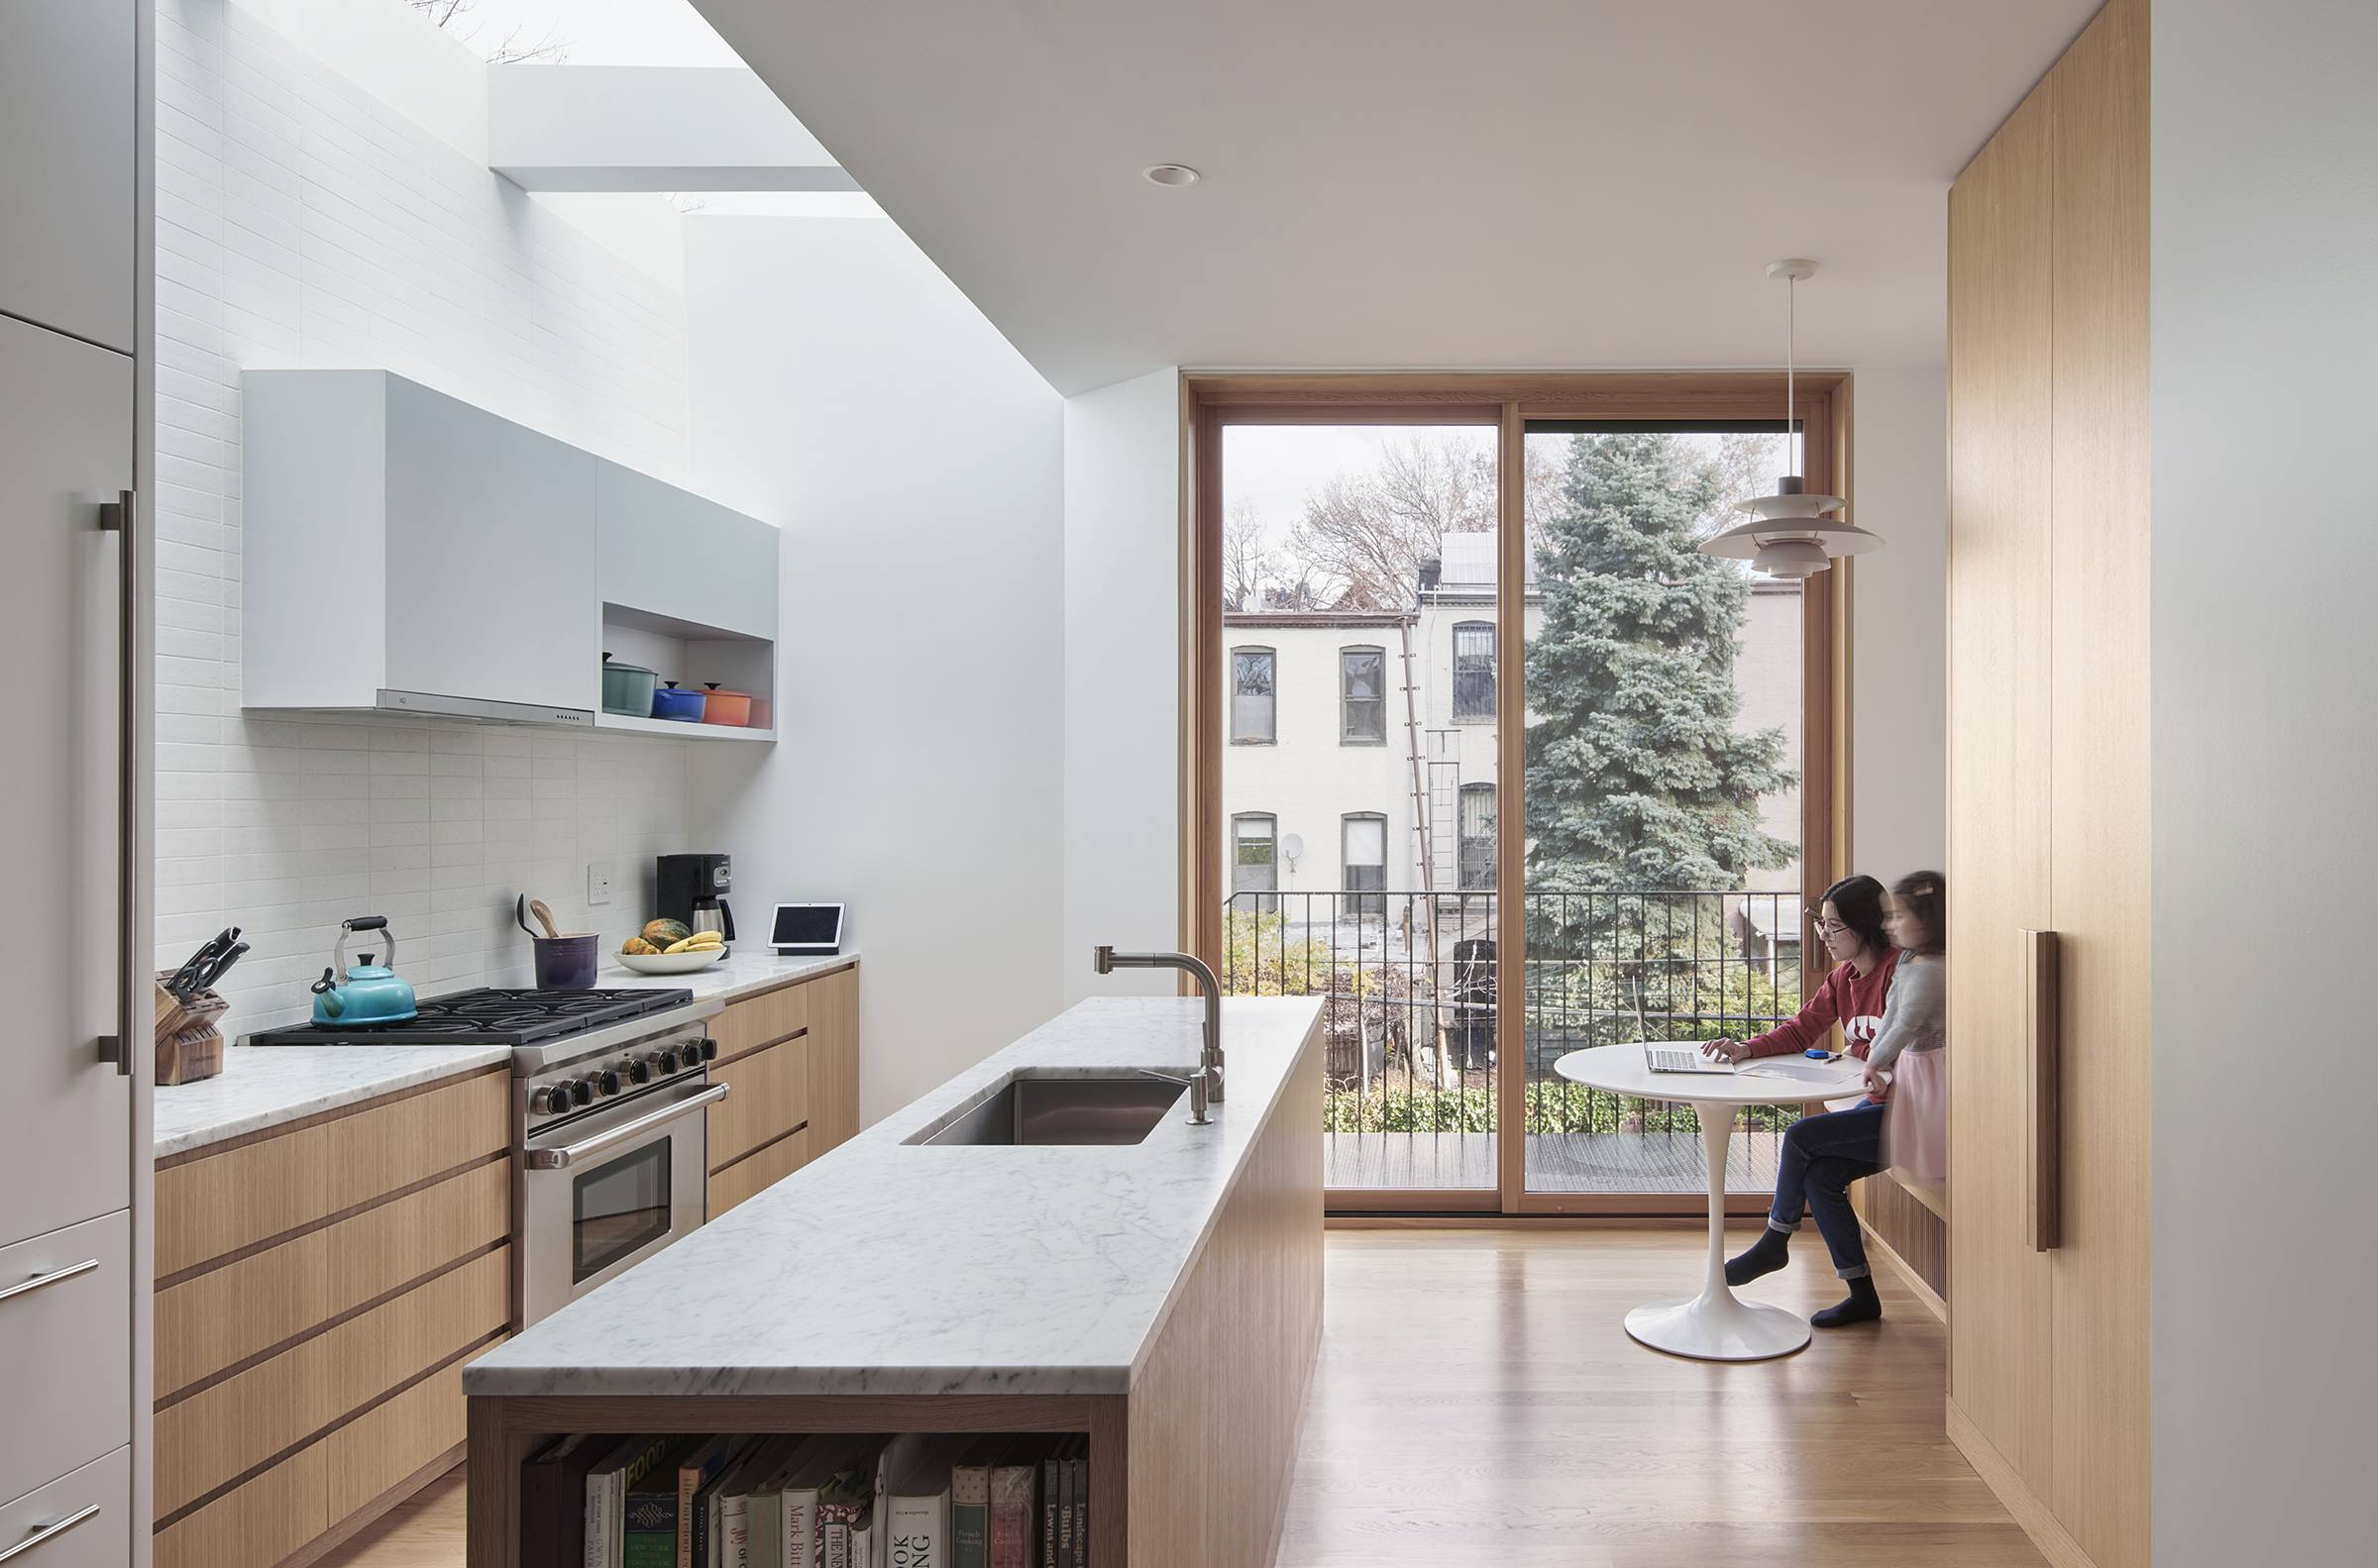 Of course, the best way to welcome spring in would be to open the windows. PhotographbyKevin Kunstadt, from Kitchen of the Week: A Client's Narrow Childhood Home in Park Slope Gets an Airy Addition.